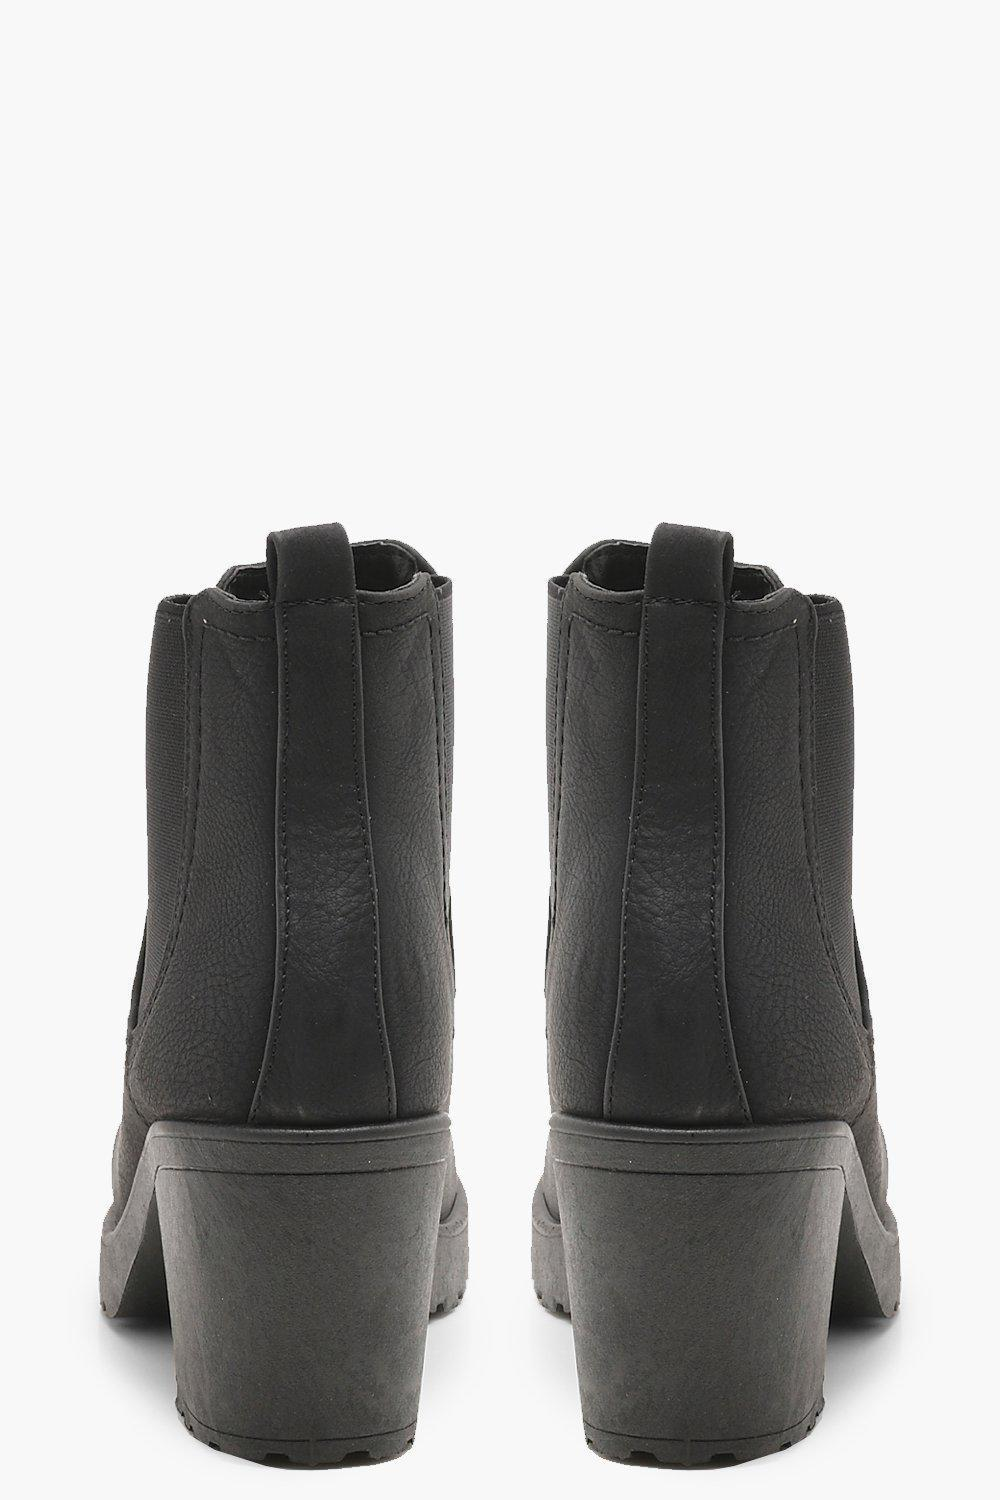 167d36306152 Boohoo - Black Wide Fit Chunky Cleated Heel Chelsea Boots - Lyst. View  fullscreen